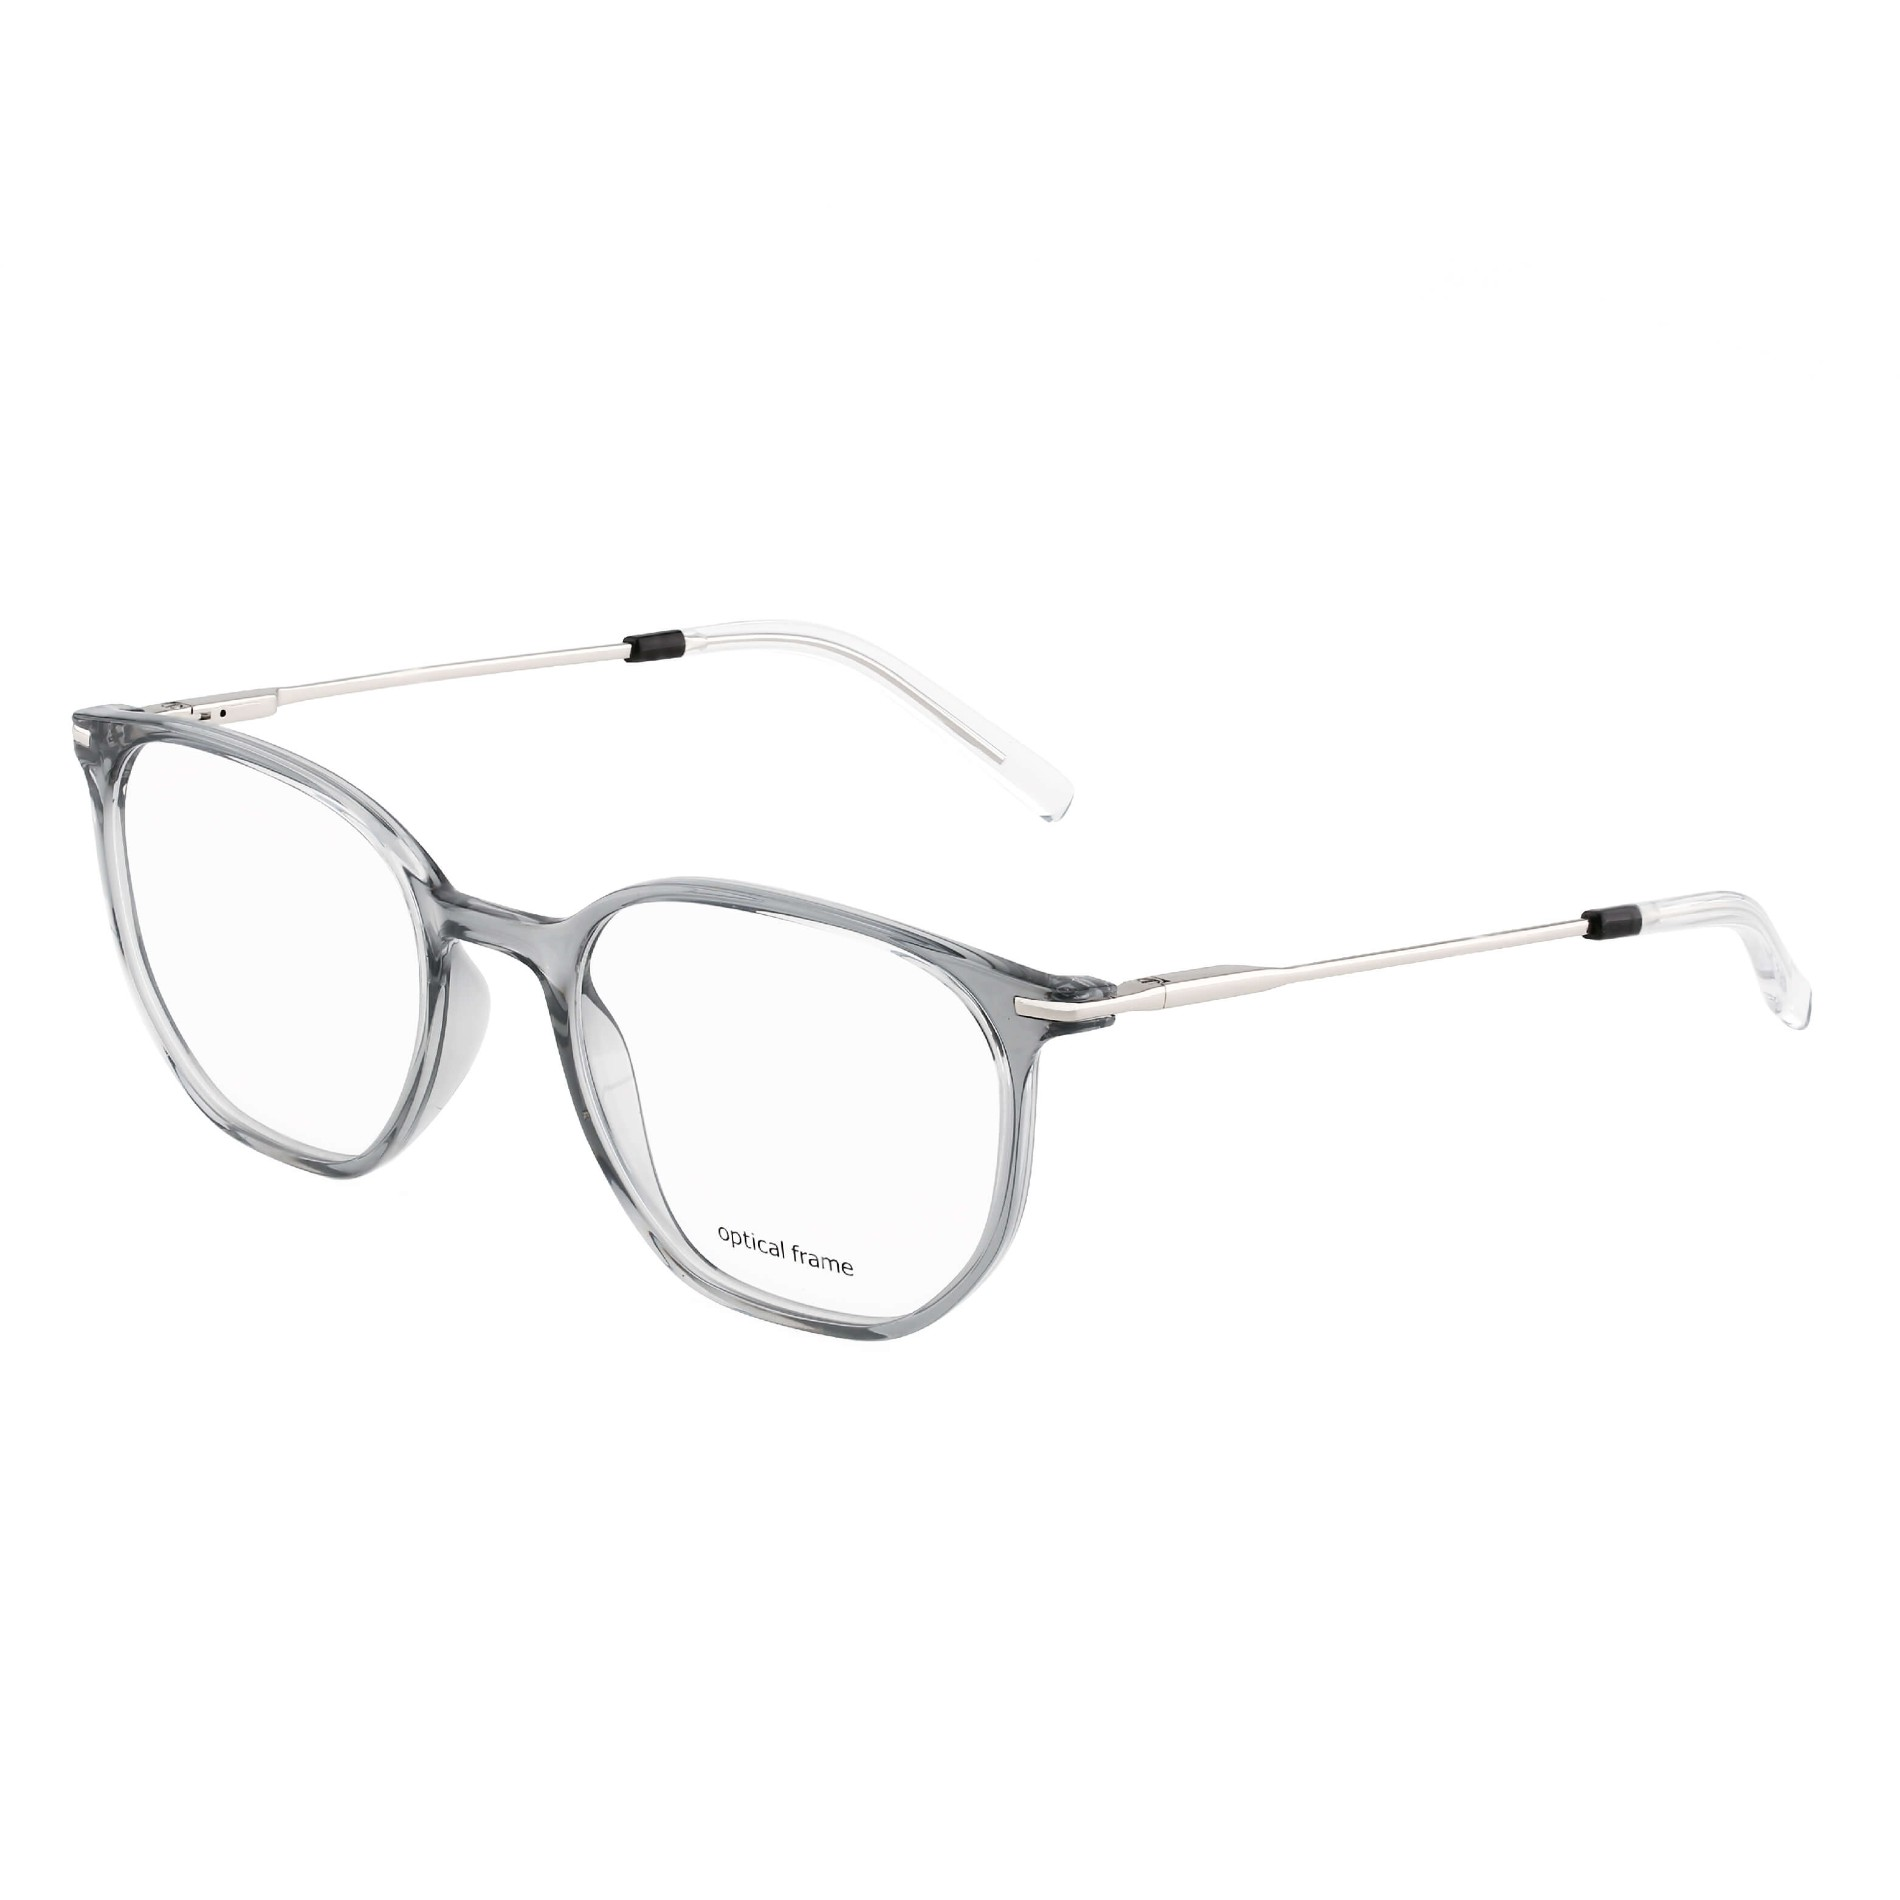 Metal Temple and TR90 Glasses Frames Blue Light Blocking Glasses Manufacturers, Metal Temple and TR90 Glasses Frames Blue Light Blocking Glasses Factory, Supply Metal Temple and TR90 Glasses Frames Blue Light Blocking Glasses